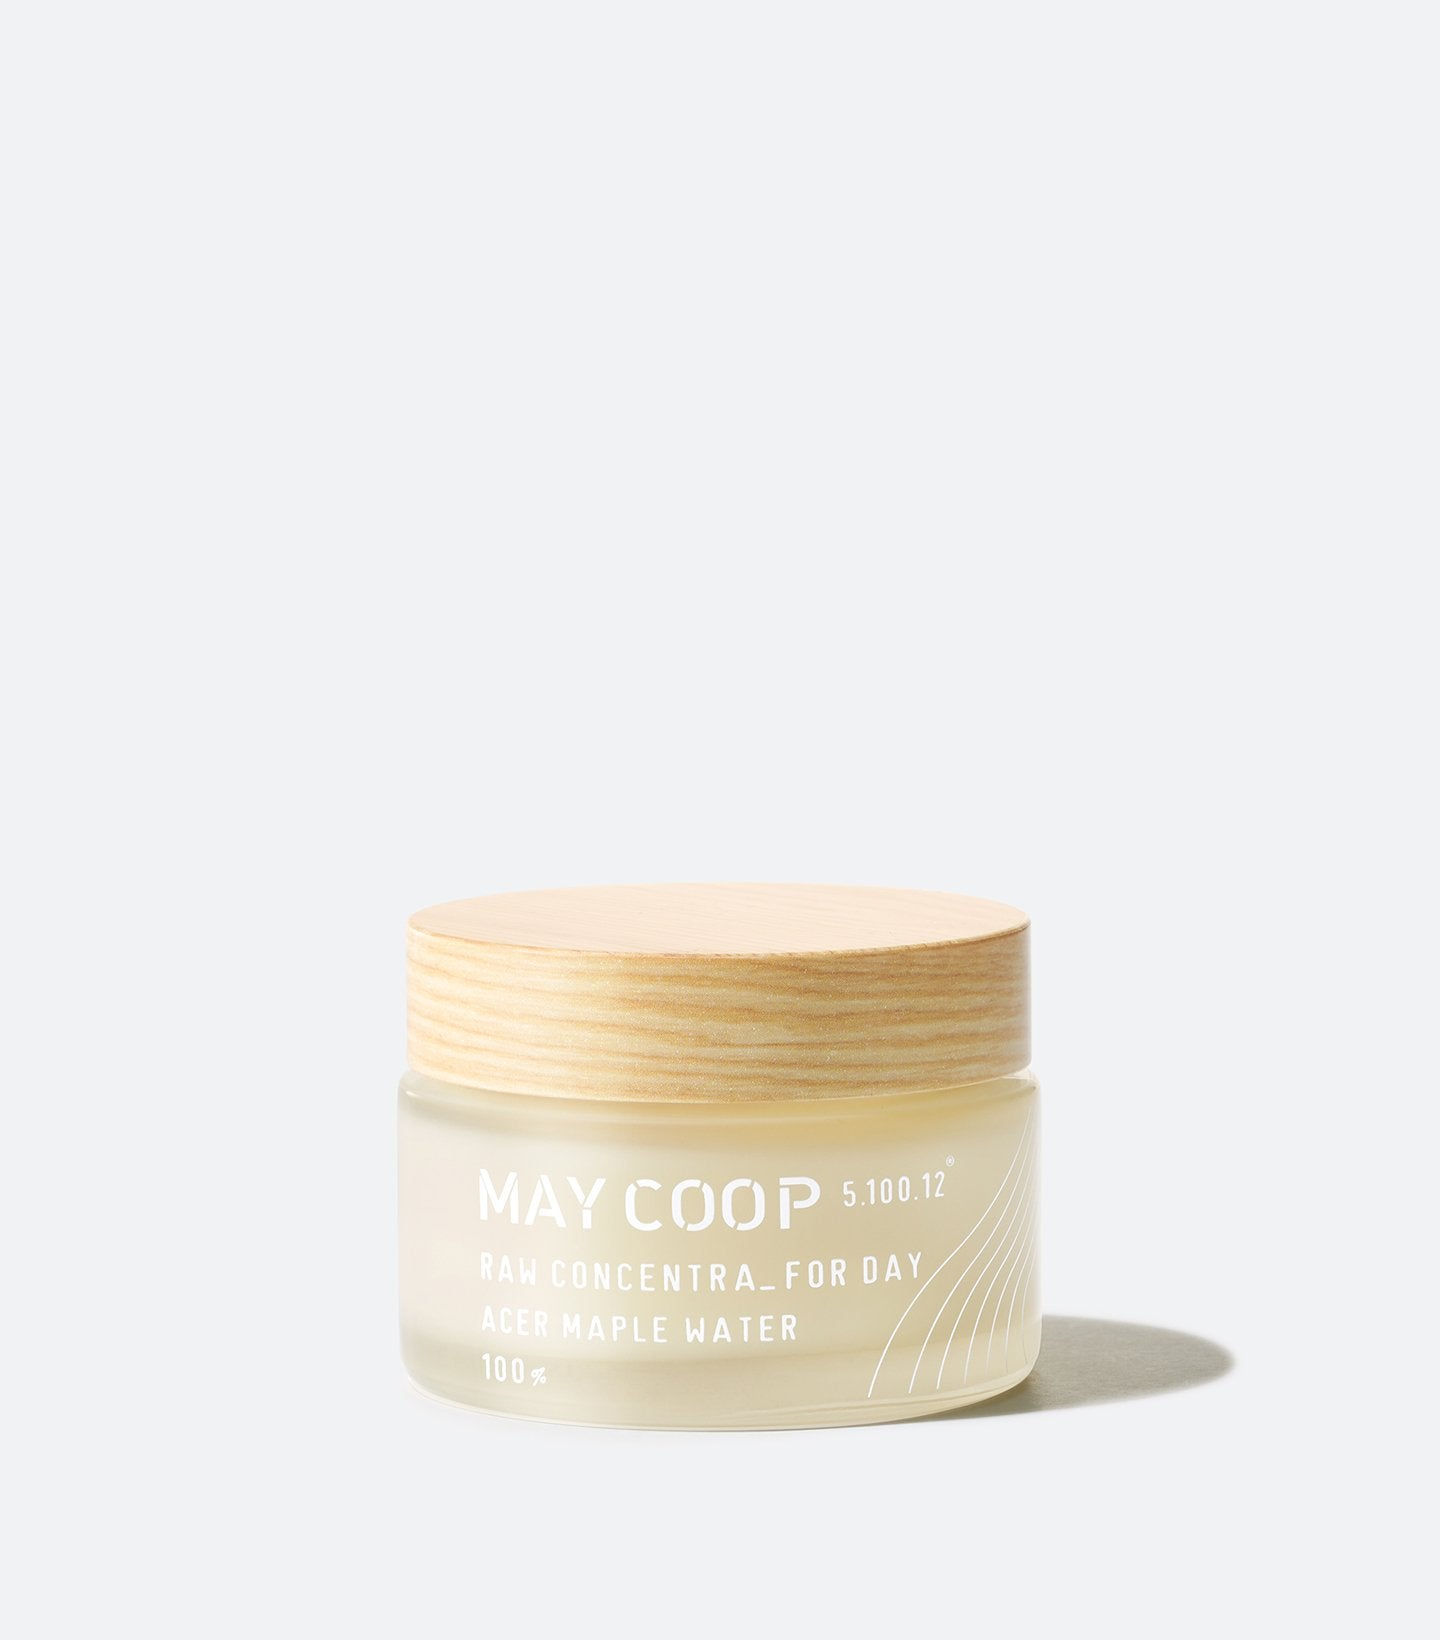 Raw Concentra Day Cream